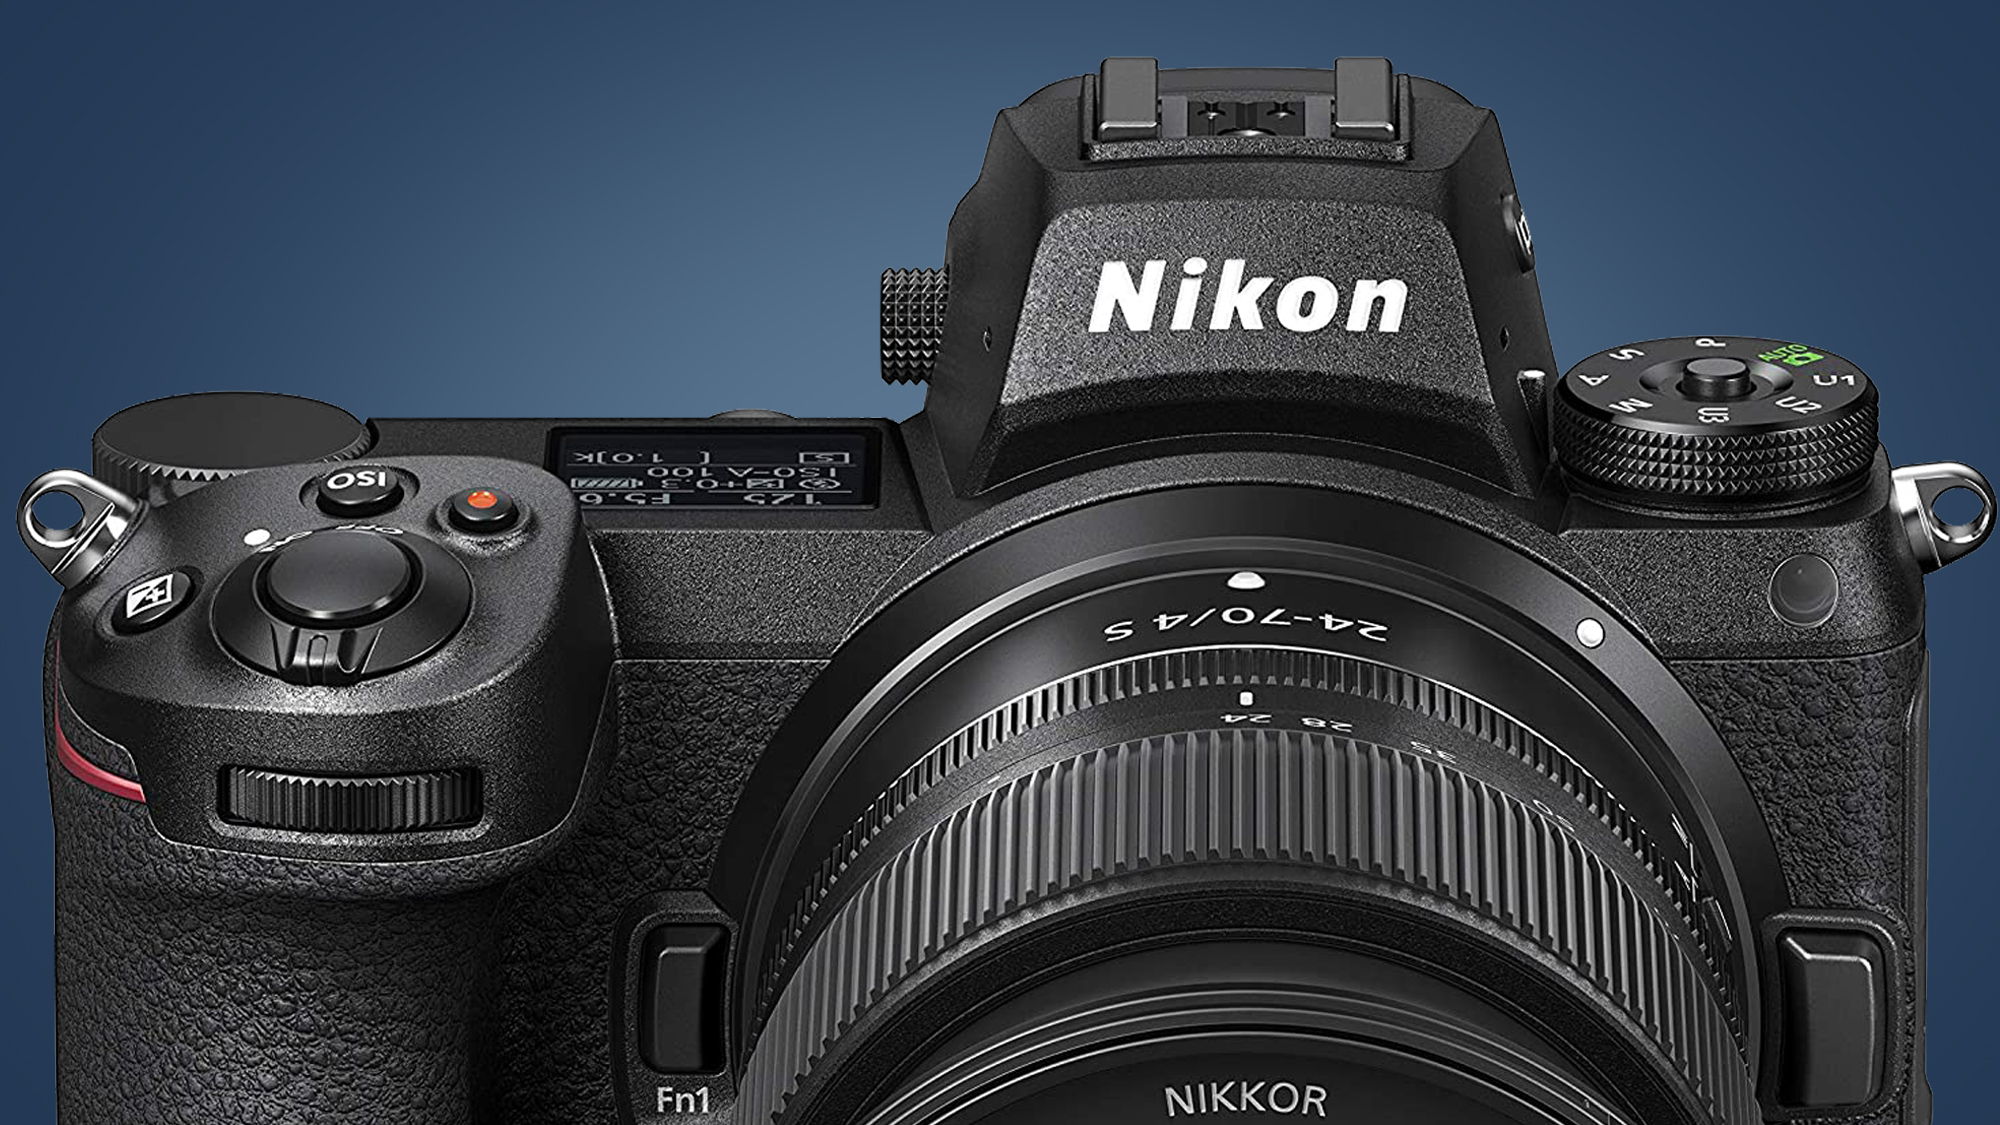 Nikon UK temporarily stops taking orders due to 'changes brought on by Brexit'